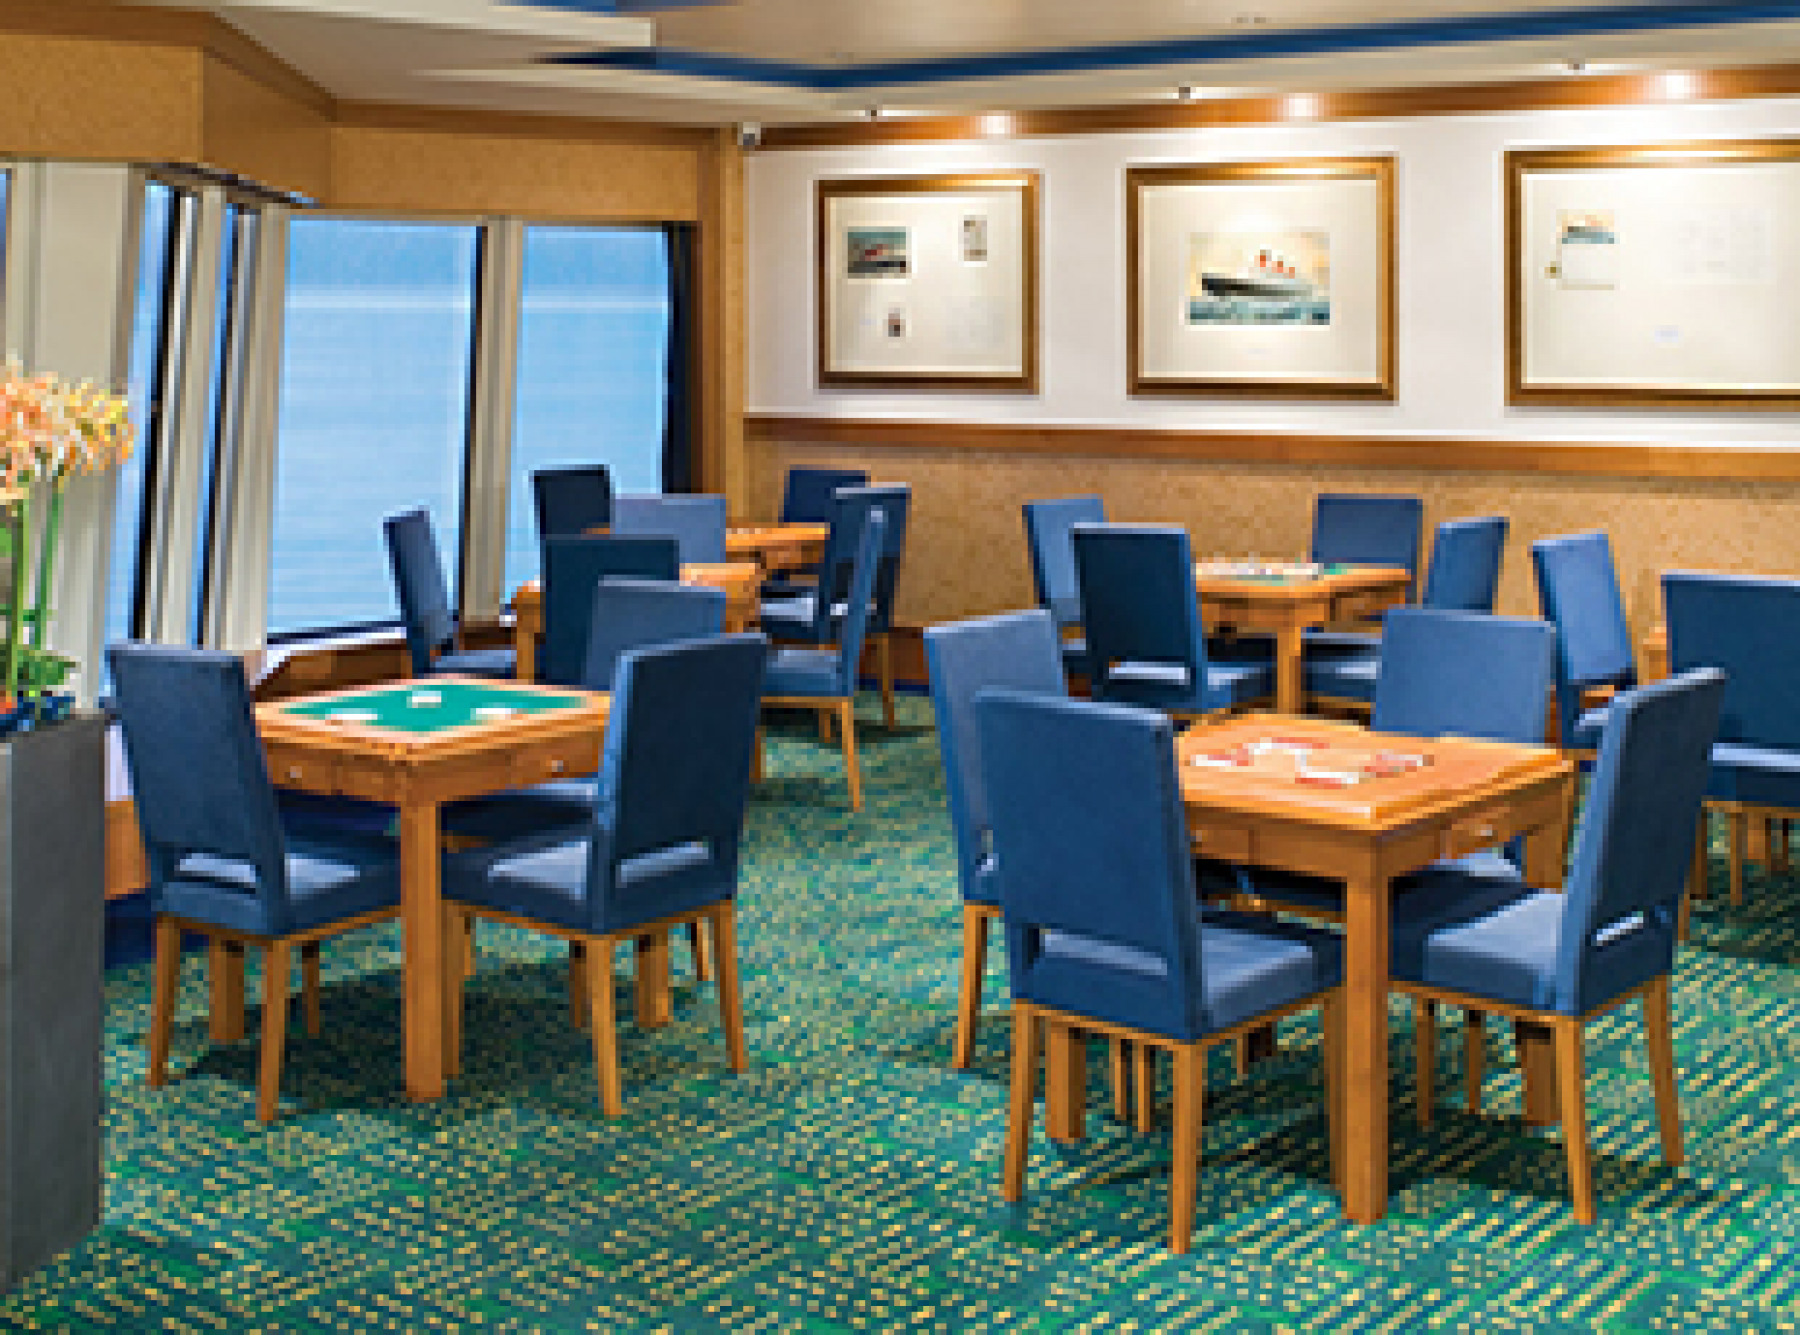 Norwegian Cruise Line Norwegian Jewel Interior Card Room.jpg